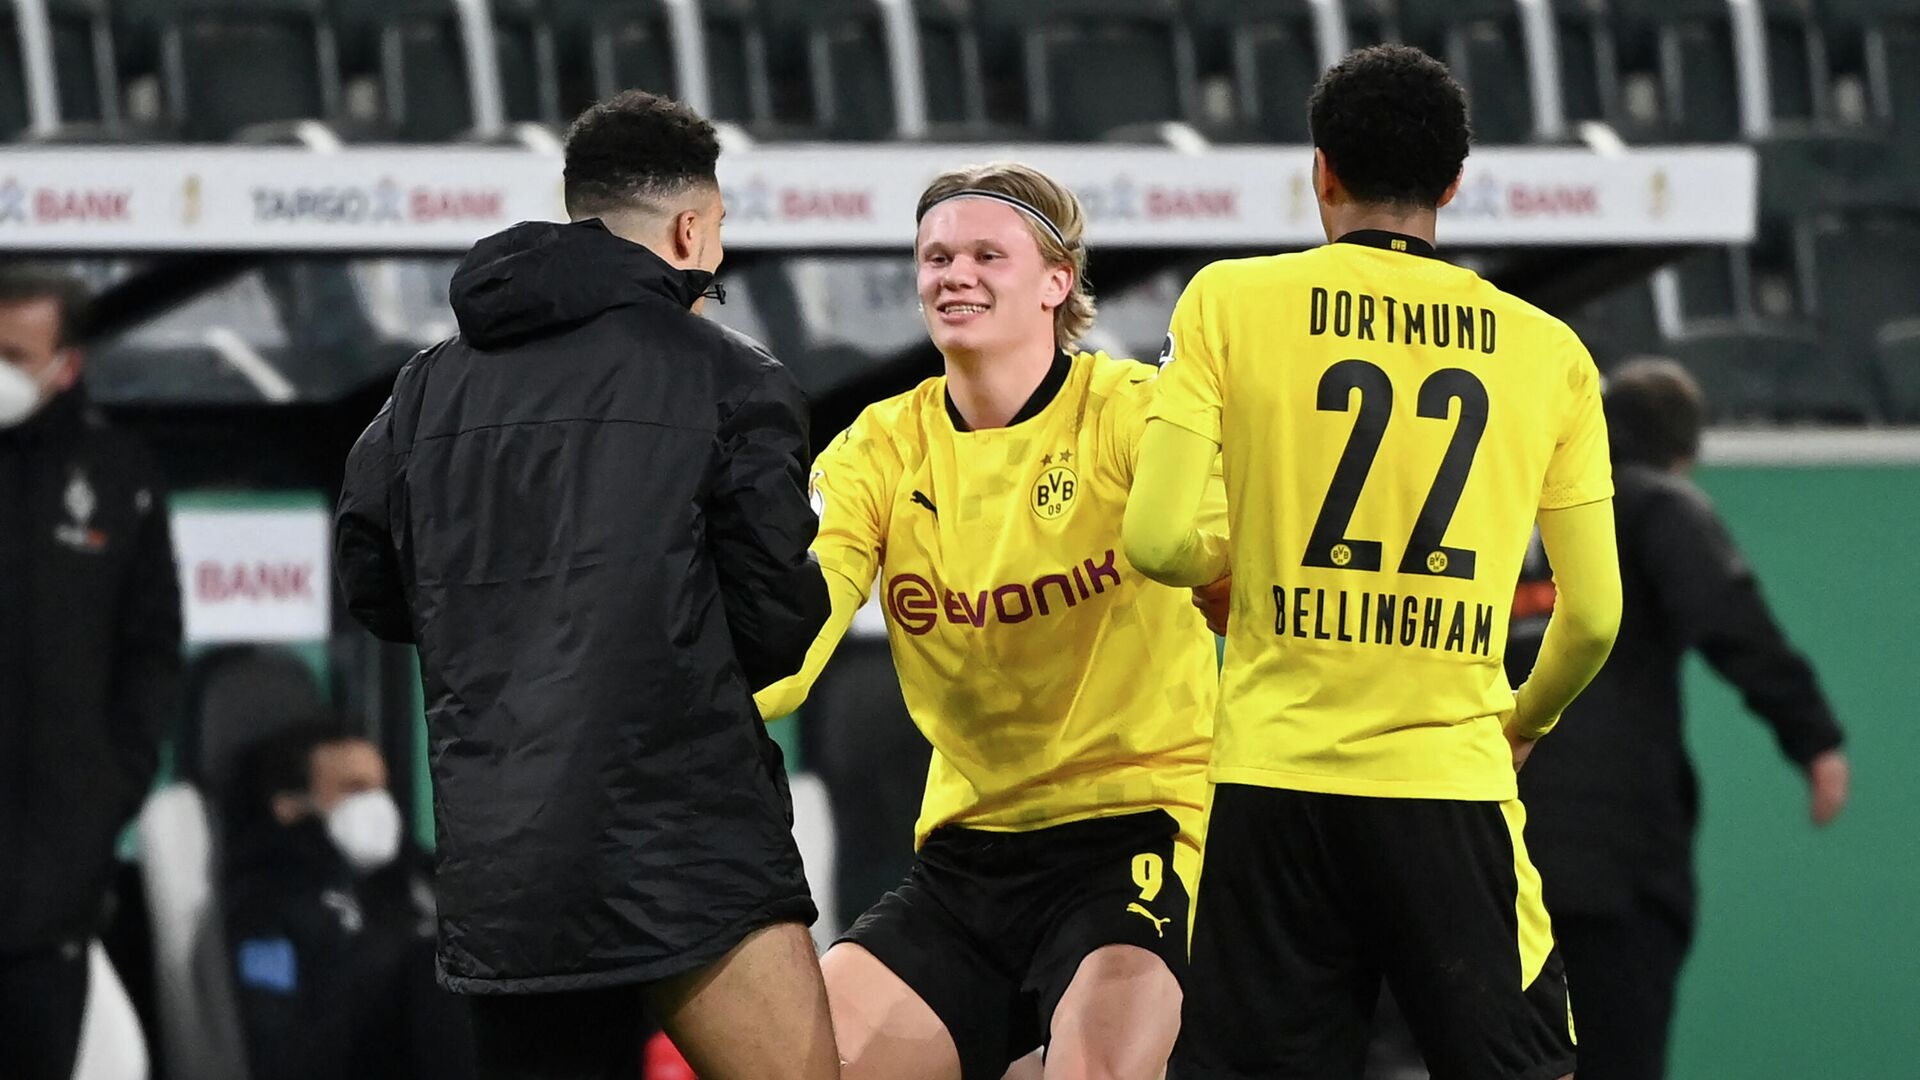 (LtoR) Dortmund's English midfielder Jadon Sancho, Dortmund's Norwegian forward Erling Braut Haaland and Dortmund's English midfielder Jude Bellingham celebrate after the German Cup (DFB Pokal) quarter-final football match between Borussia Moenchengladbach and Borussia Dortmund in Moenchengladbach, western Germany, on March 2, 2021. - Dortmund won the match 1-0 and qualified for the semi-finals. (Photo by Ina Fassbender / various sources / AFP) / DFB REGULATIONS PROHIBIT ANY USE OF PHOTOGRAPHS AS IMAGE SEQUENCES AND QUASI-VIDEO. - РИА Новости, 1920, 03.03.2021